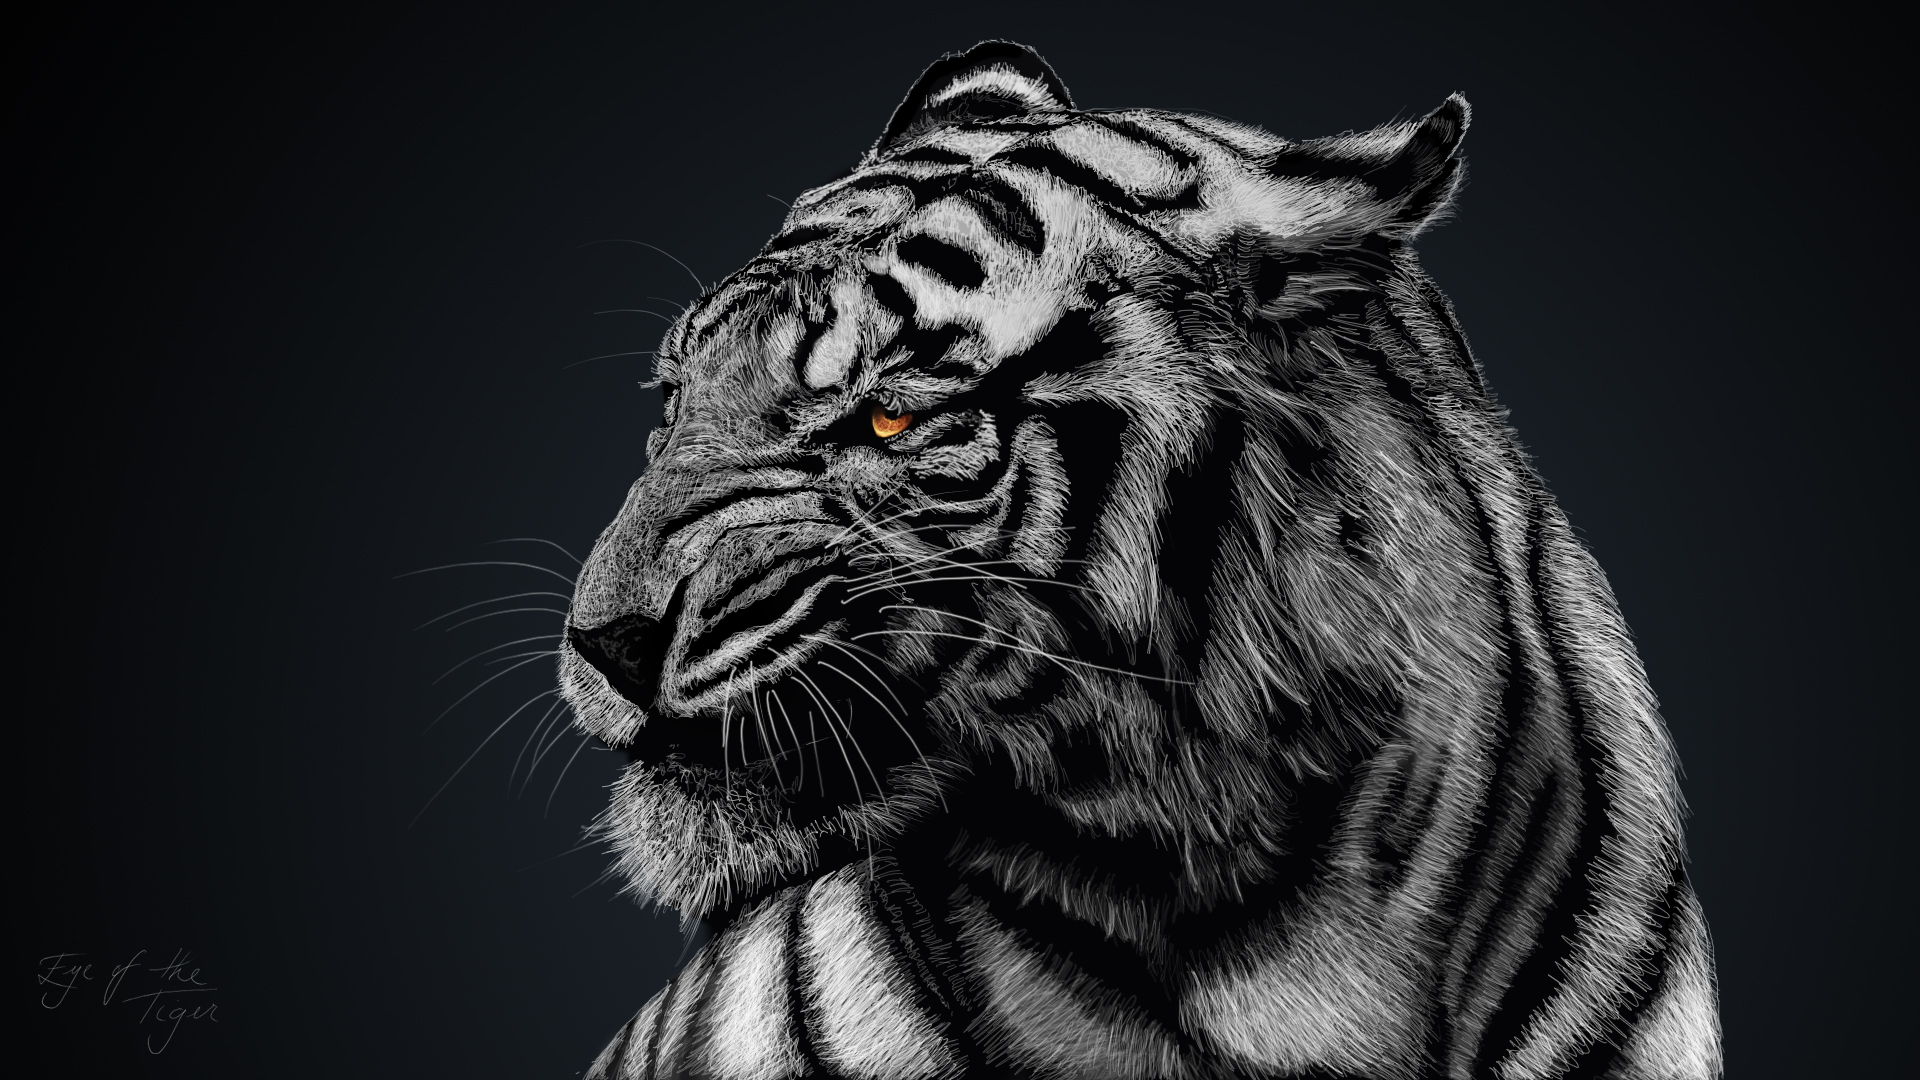 Tiger Artwork HD693636362 - Tiger Artwork HD - Tiger, Leopard, Artwork